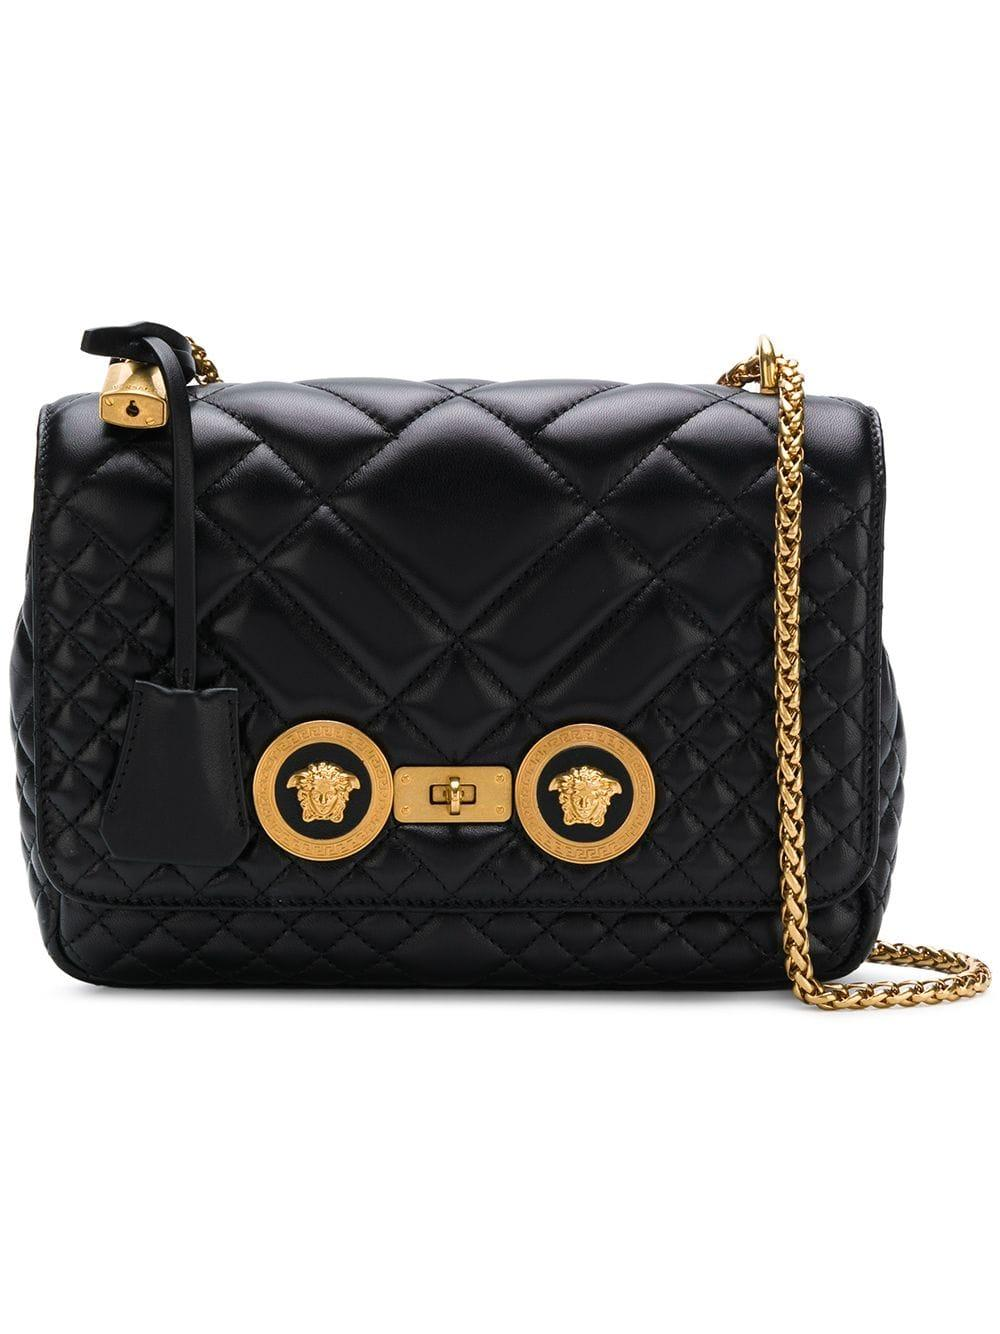 dbbf9bcb Versace Quilted Shoulder Bag in Black - Save 38% - Lyst